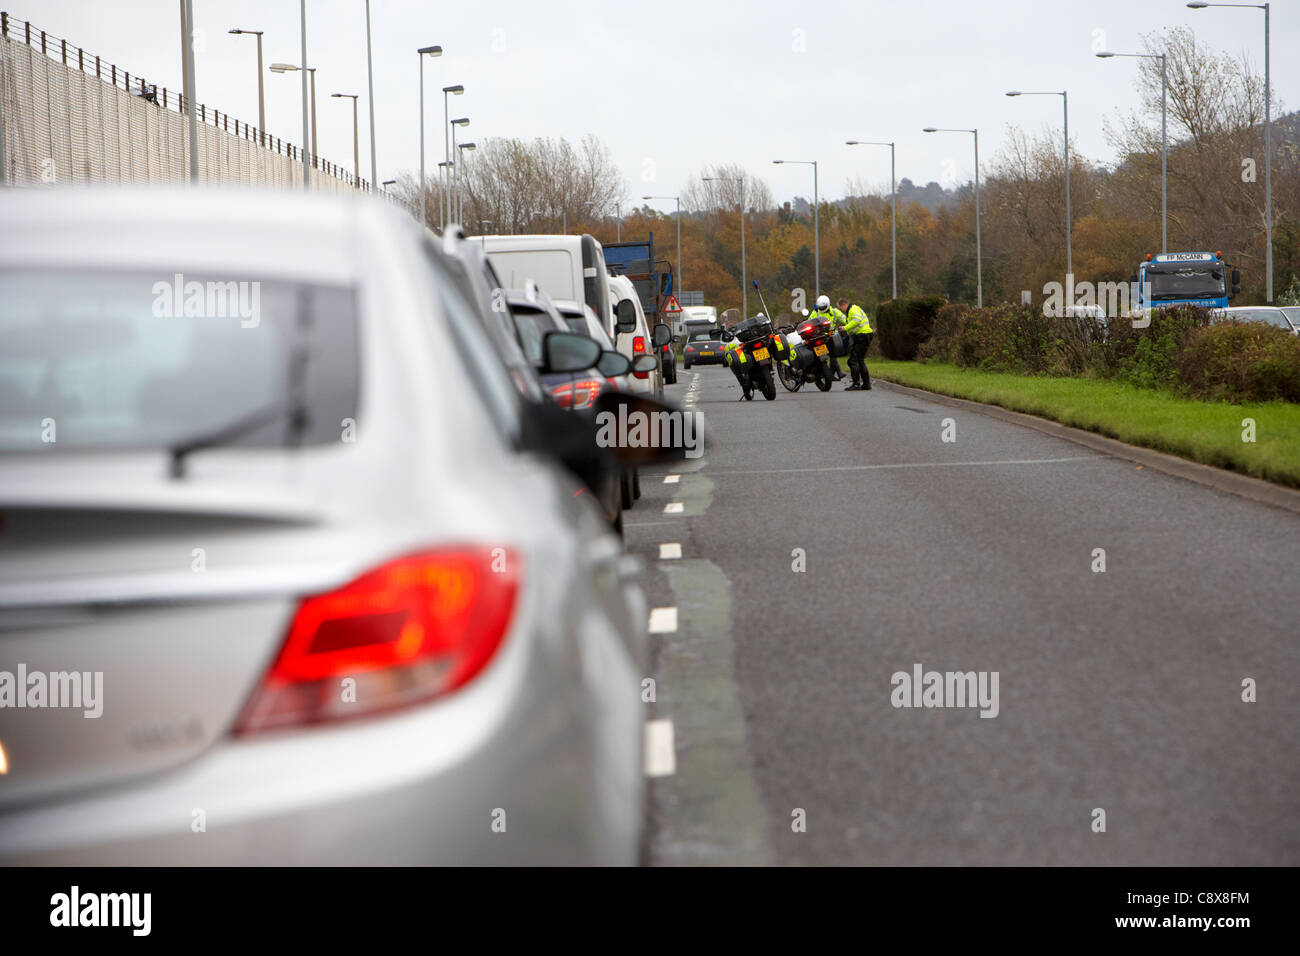 Police motorcycle officers clear debris from a road traffic accident in the outside lane of a dual carriageway in - Stock Image